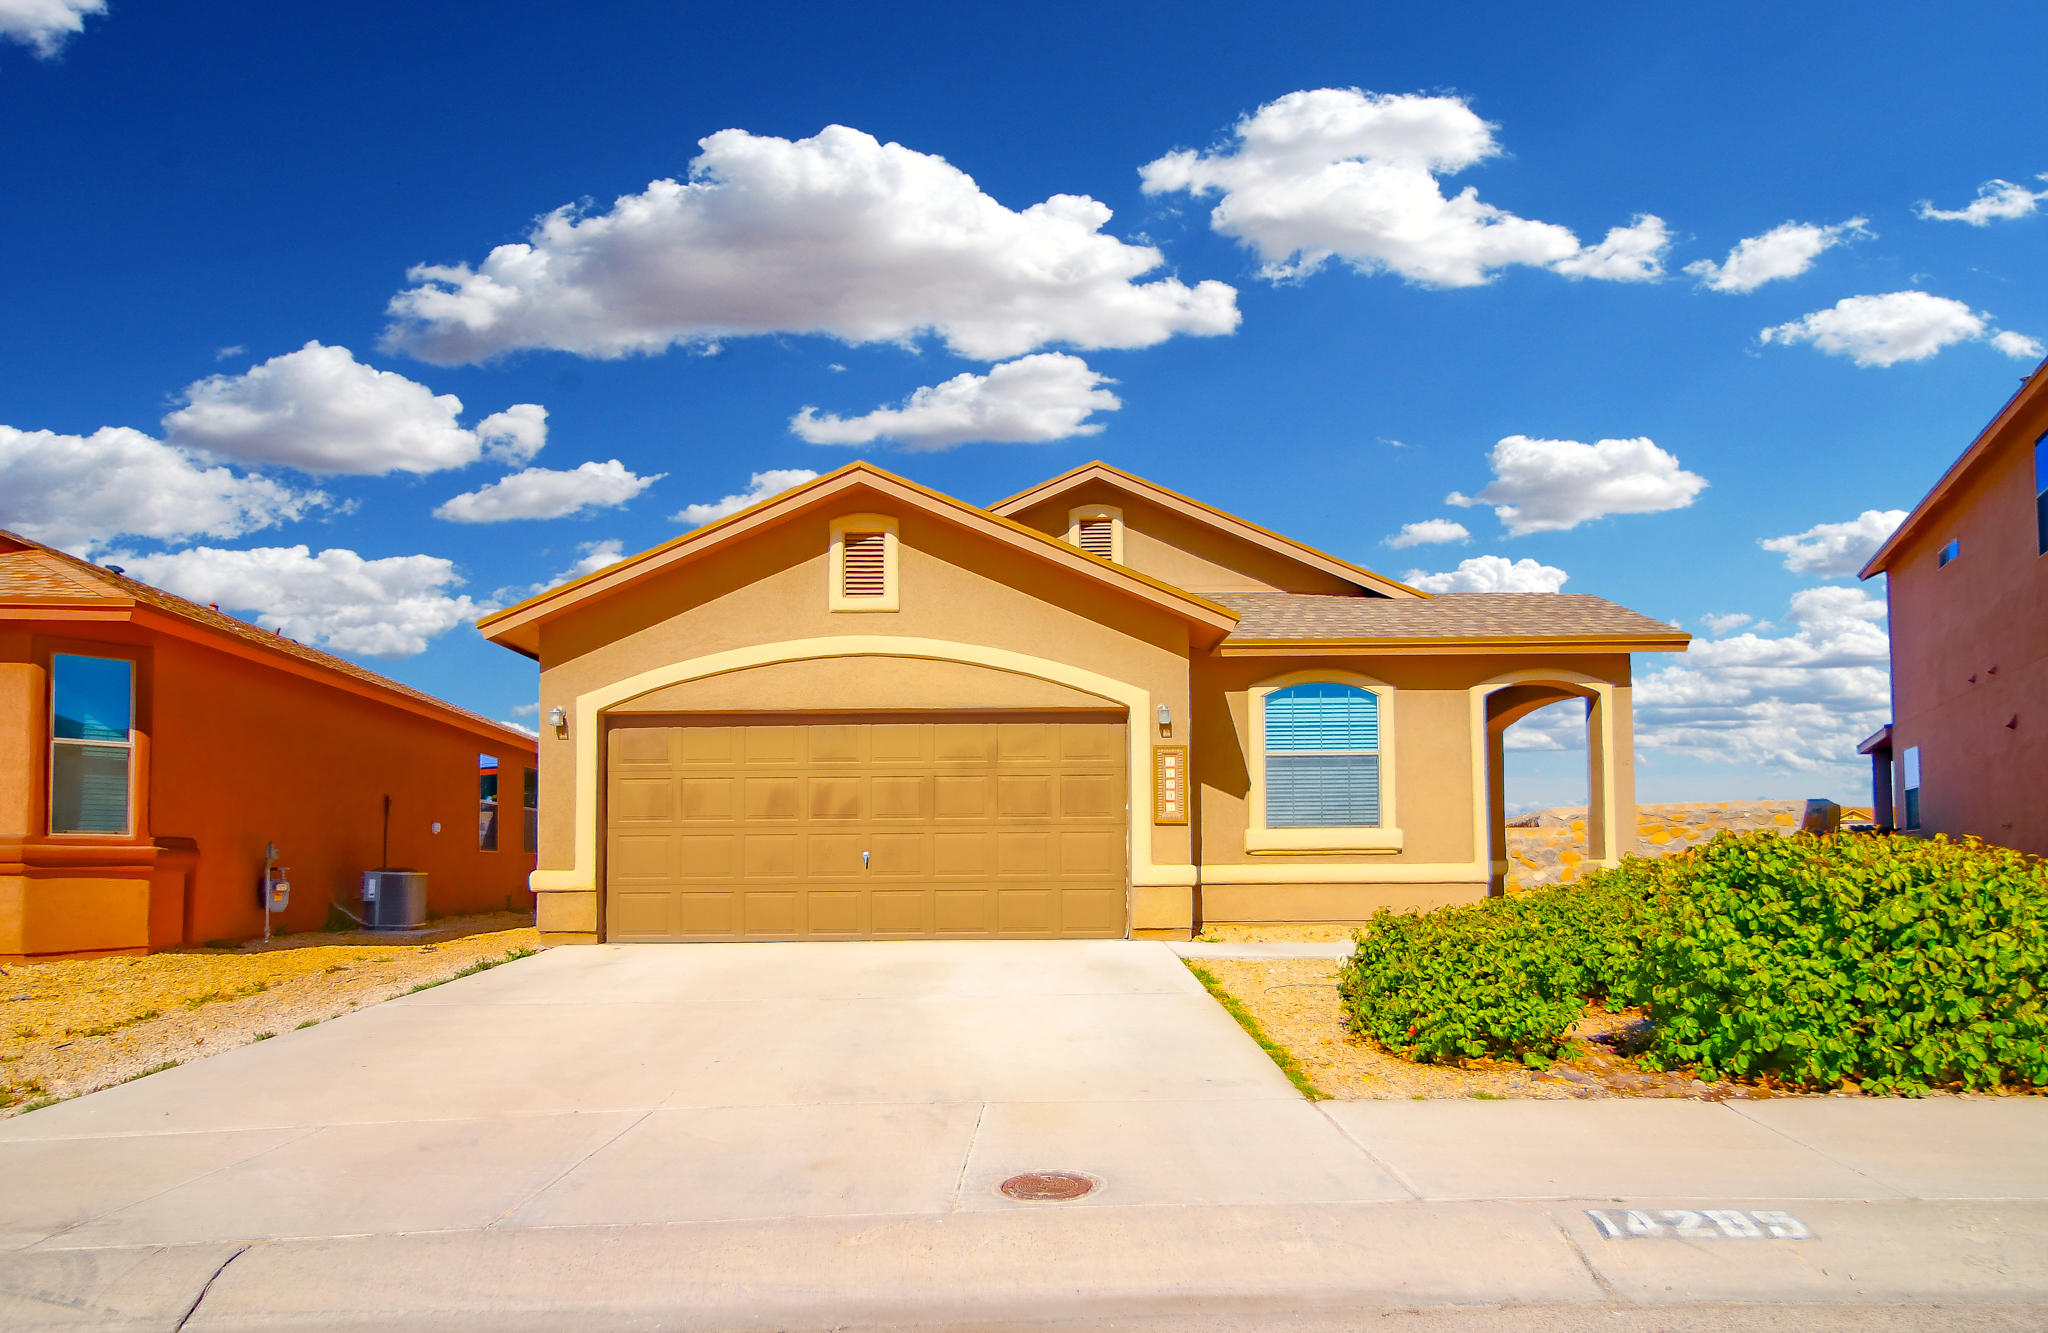 14285 RATTLER POINT, El Paso, Texas 79938, 3 Bedrooms Bedrooms, ,2 BathroomsBathrooms,Residential,For sale,RATTLER POINT,803186